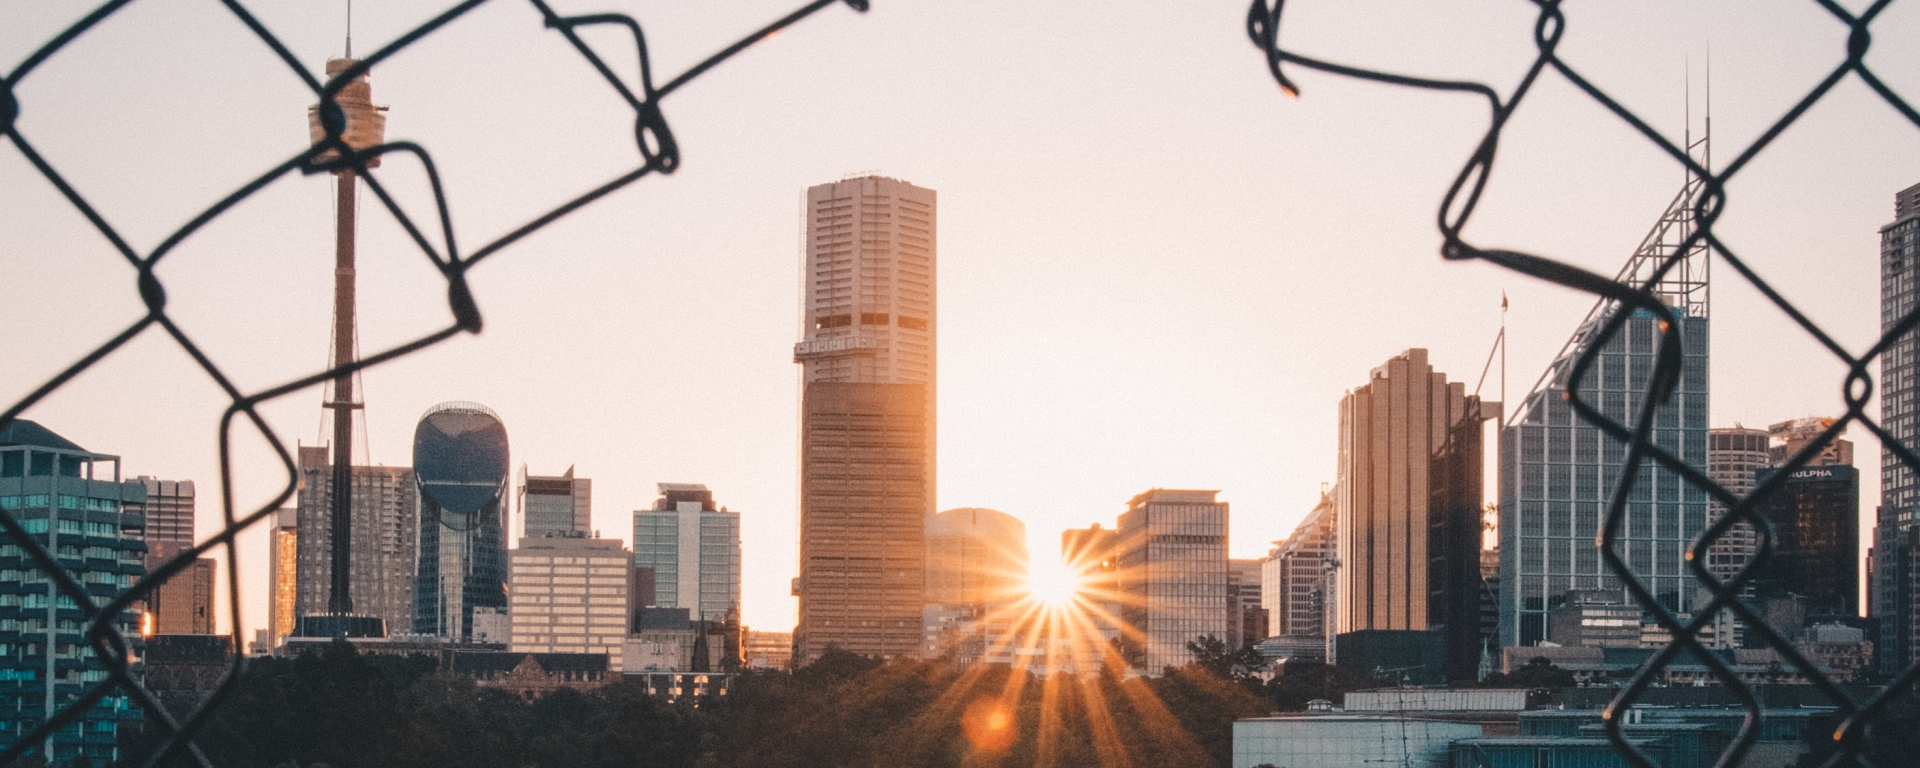 An image of a cityscape through a hole in a chain link fence